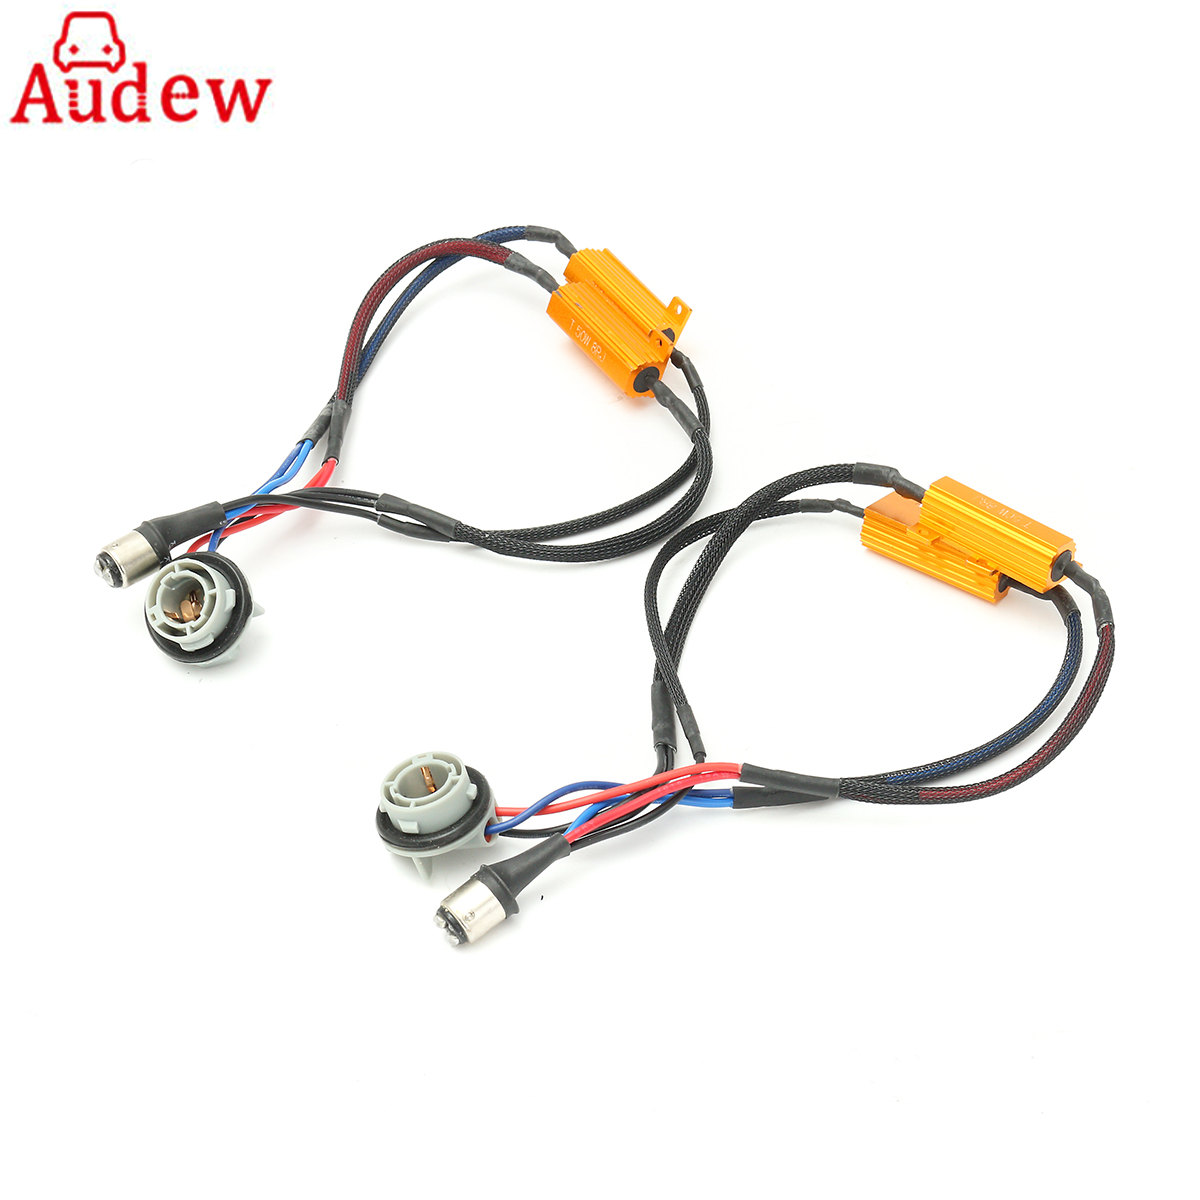 2pcs 1157 Led Decoder No Error P21 5w Wiring Adapter Load Resistor Lighting Turn Signal Light Canceller In Car Accessories From Automobiles